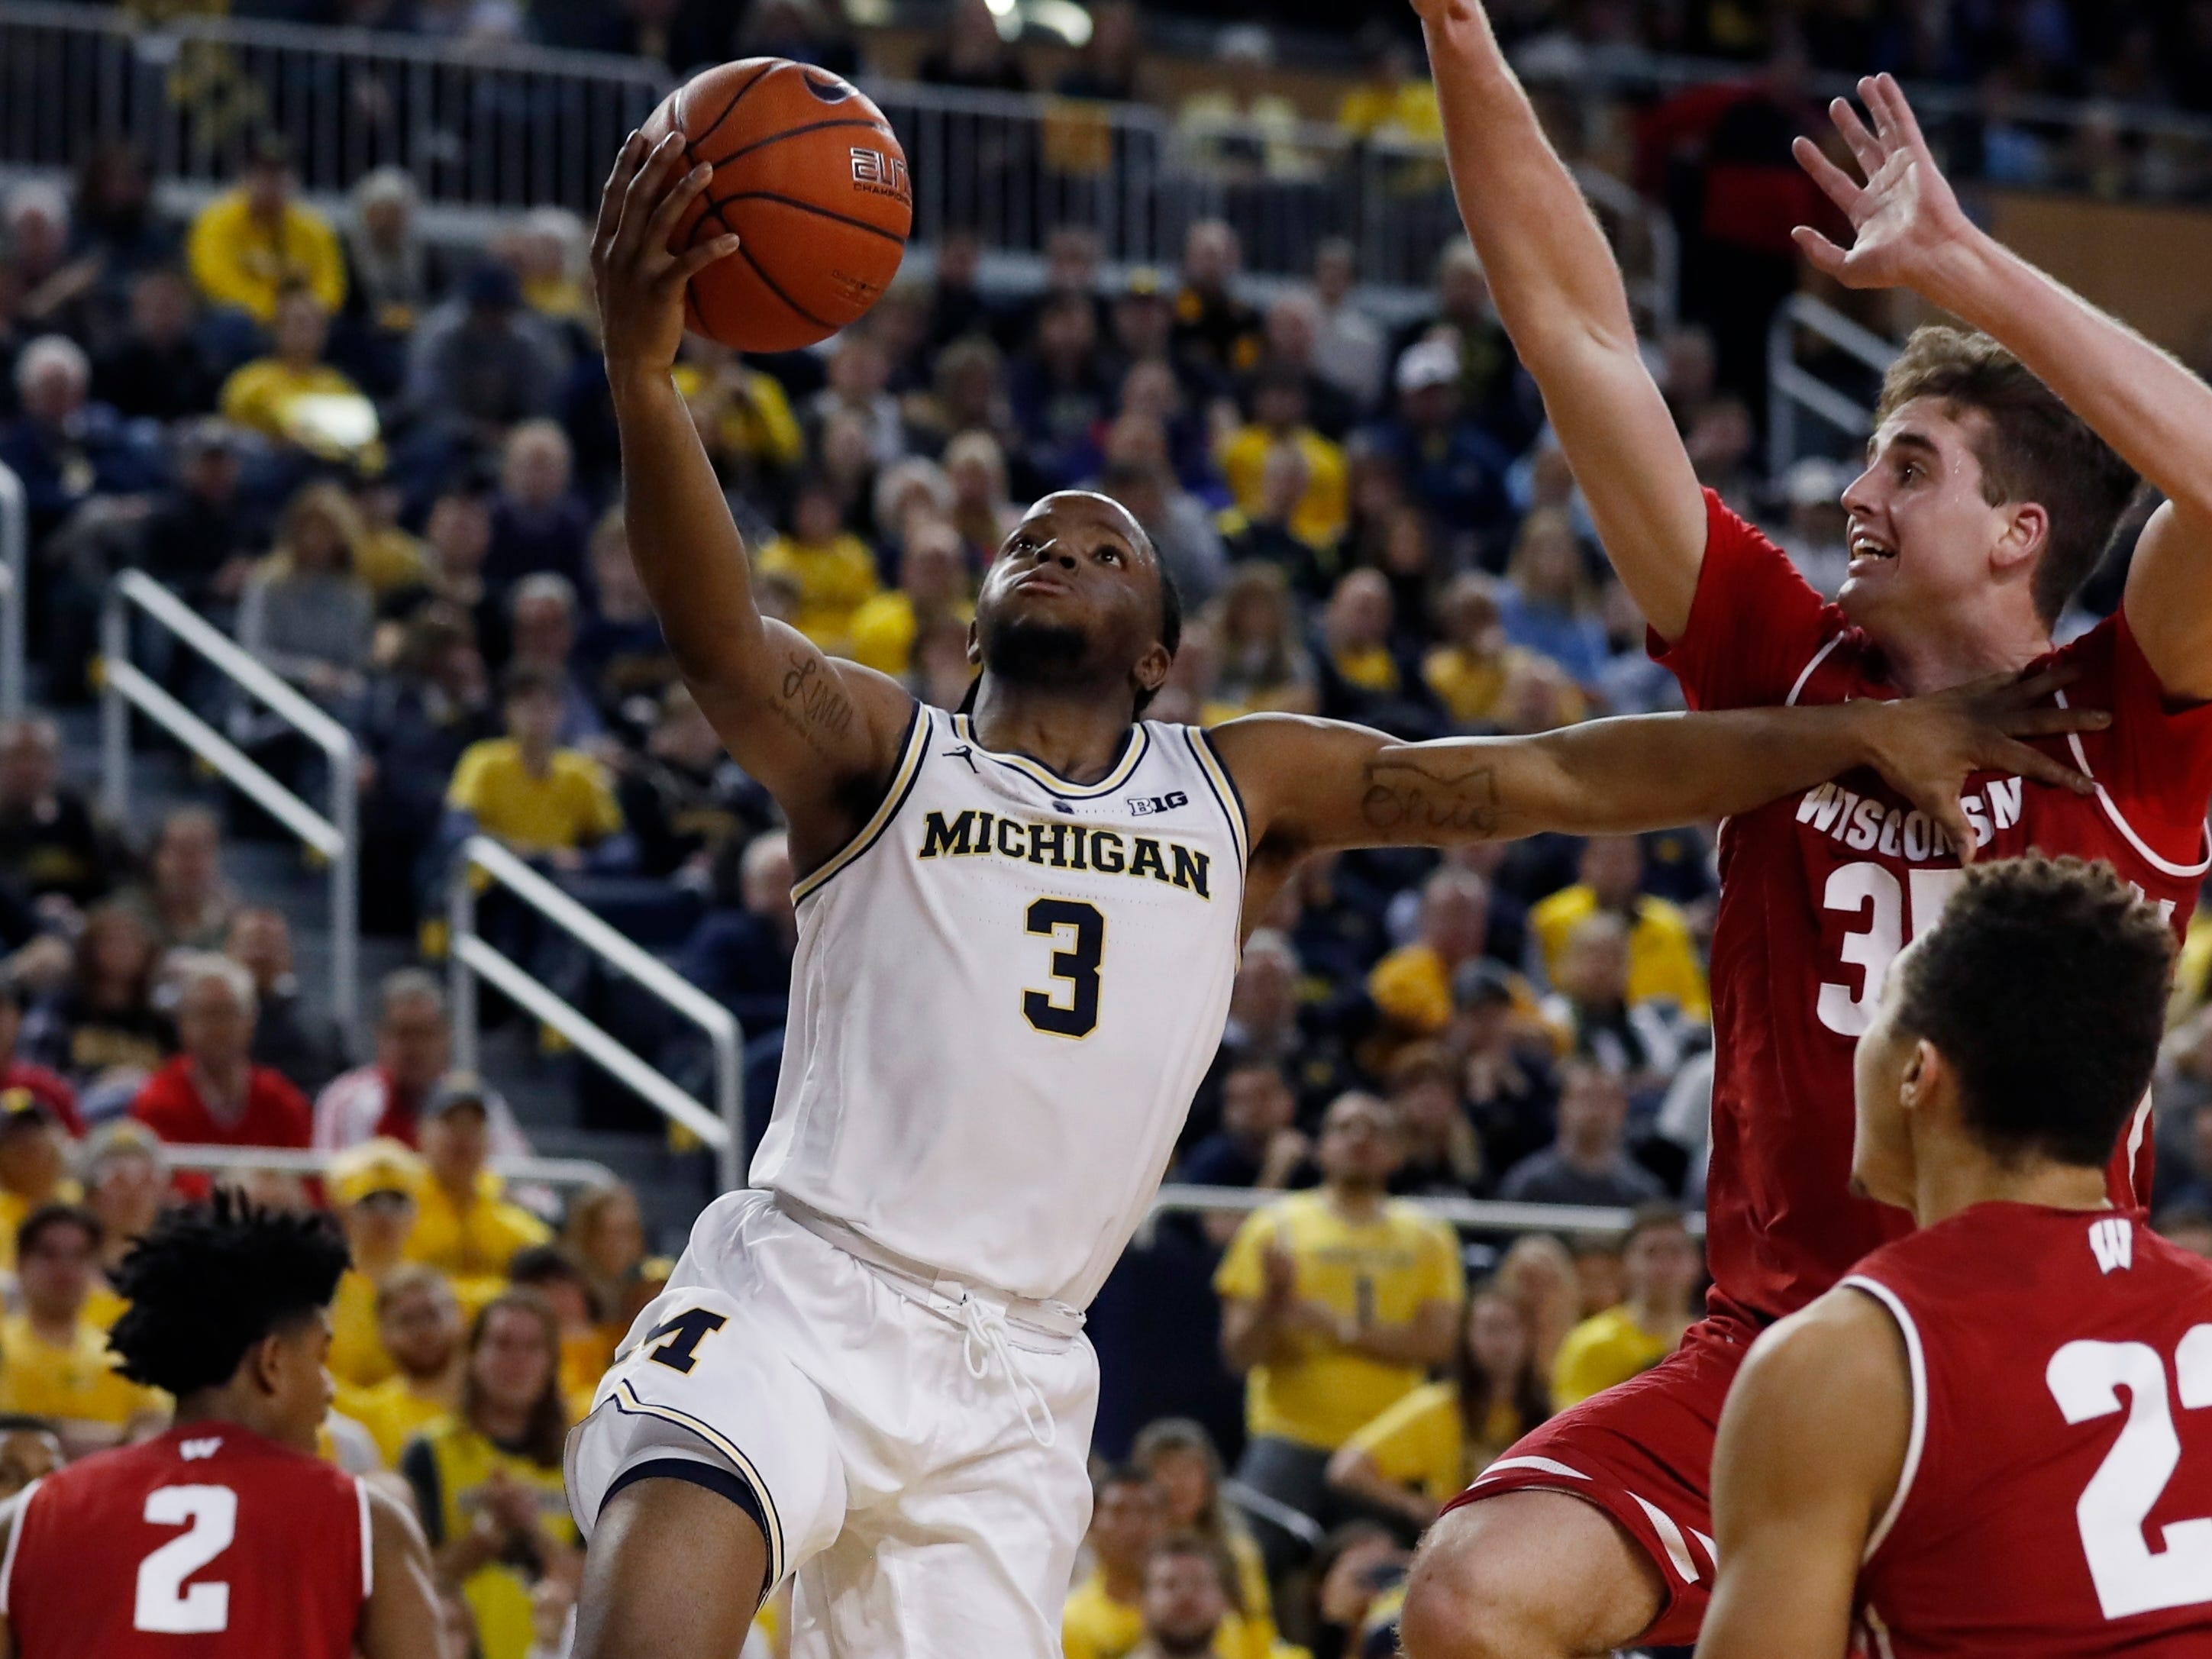 Michigan guard Zavier Simpson gets past Wisconsin defenders for a layup.